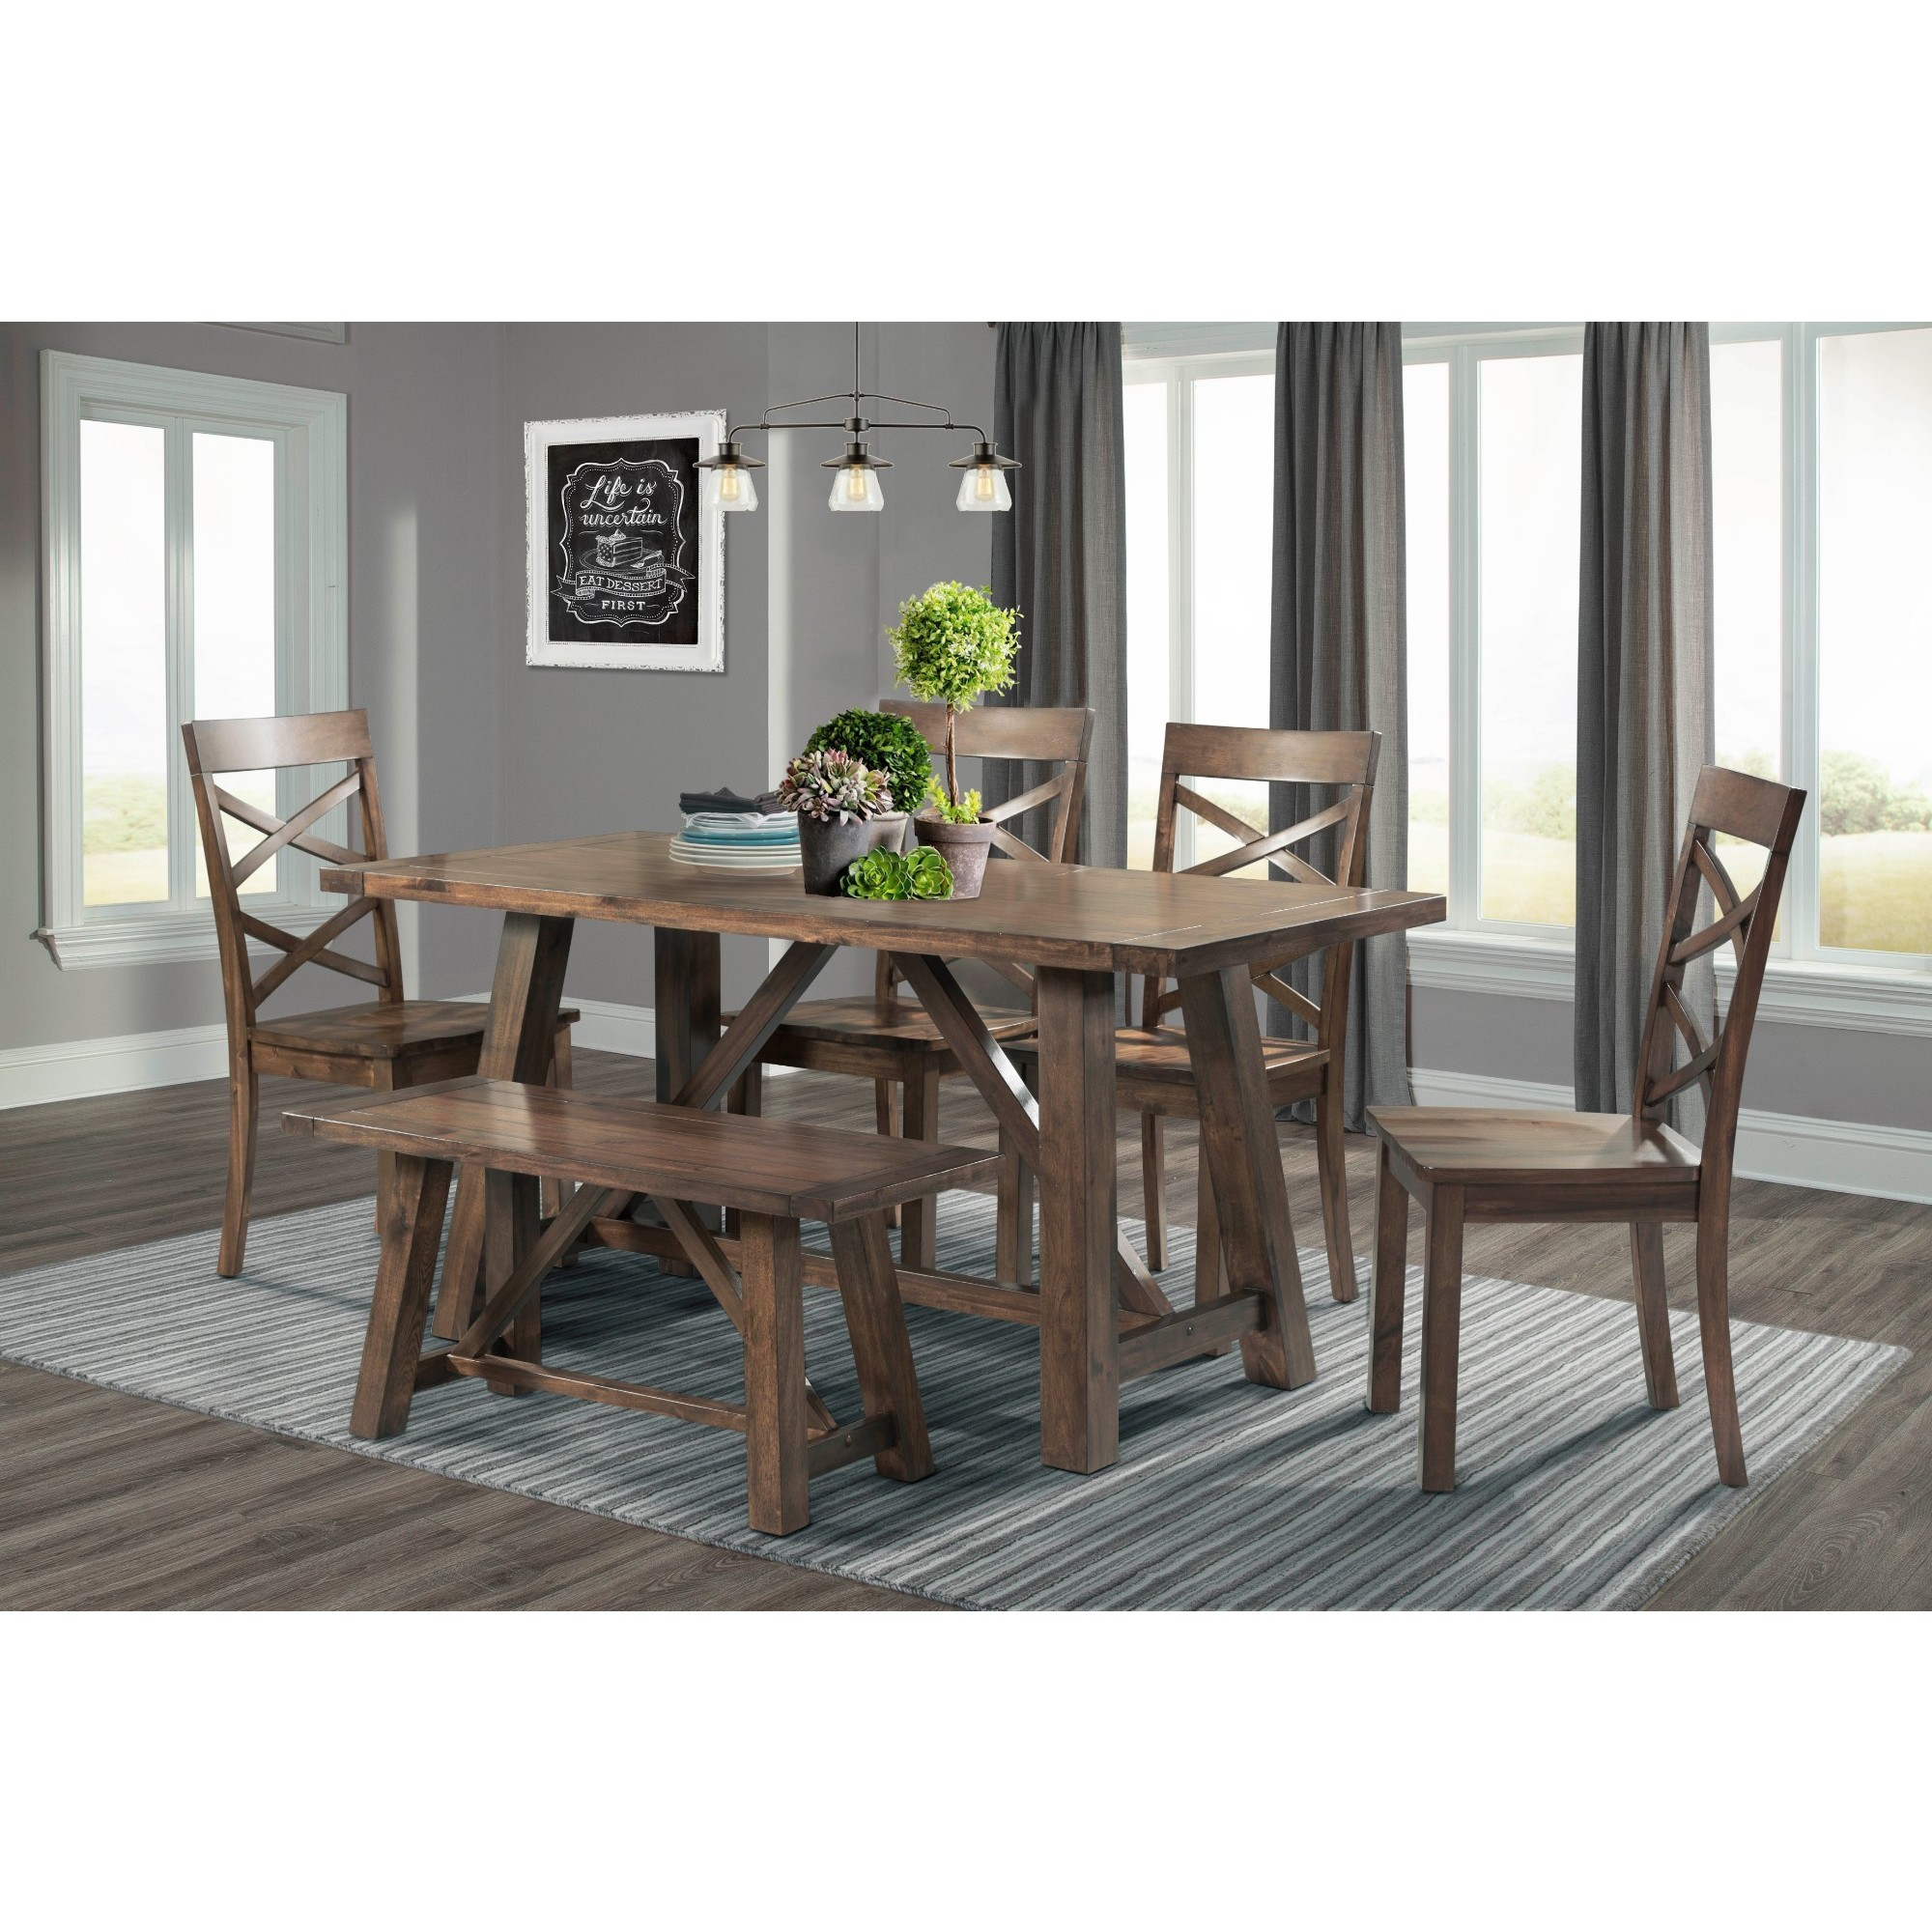 Shop Picket House Furnishings Regan 6pc Dining Set Table 4 Dining